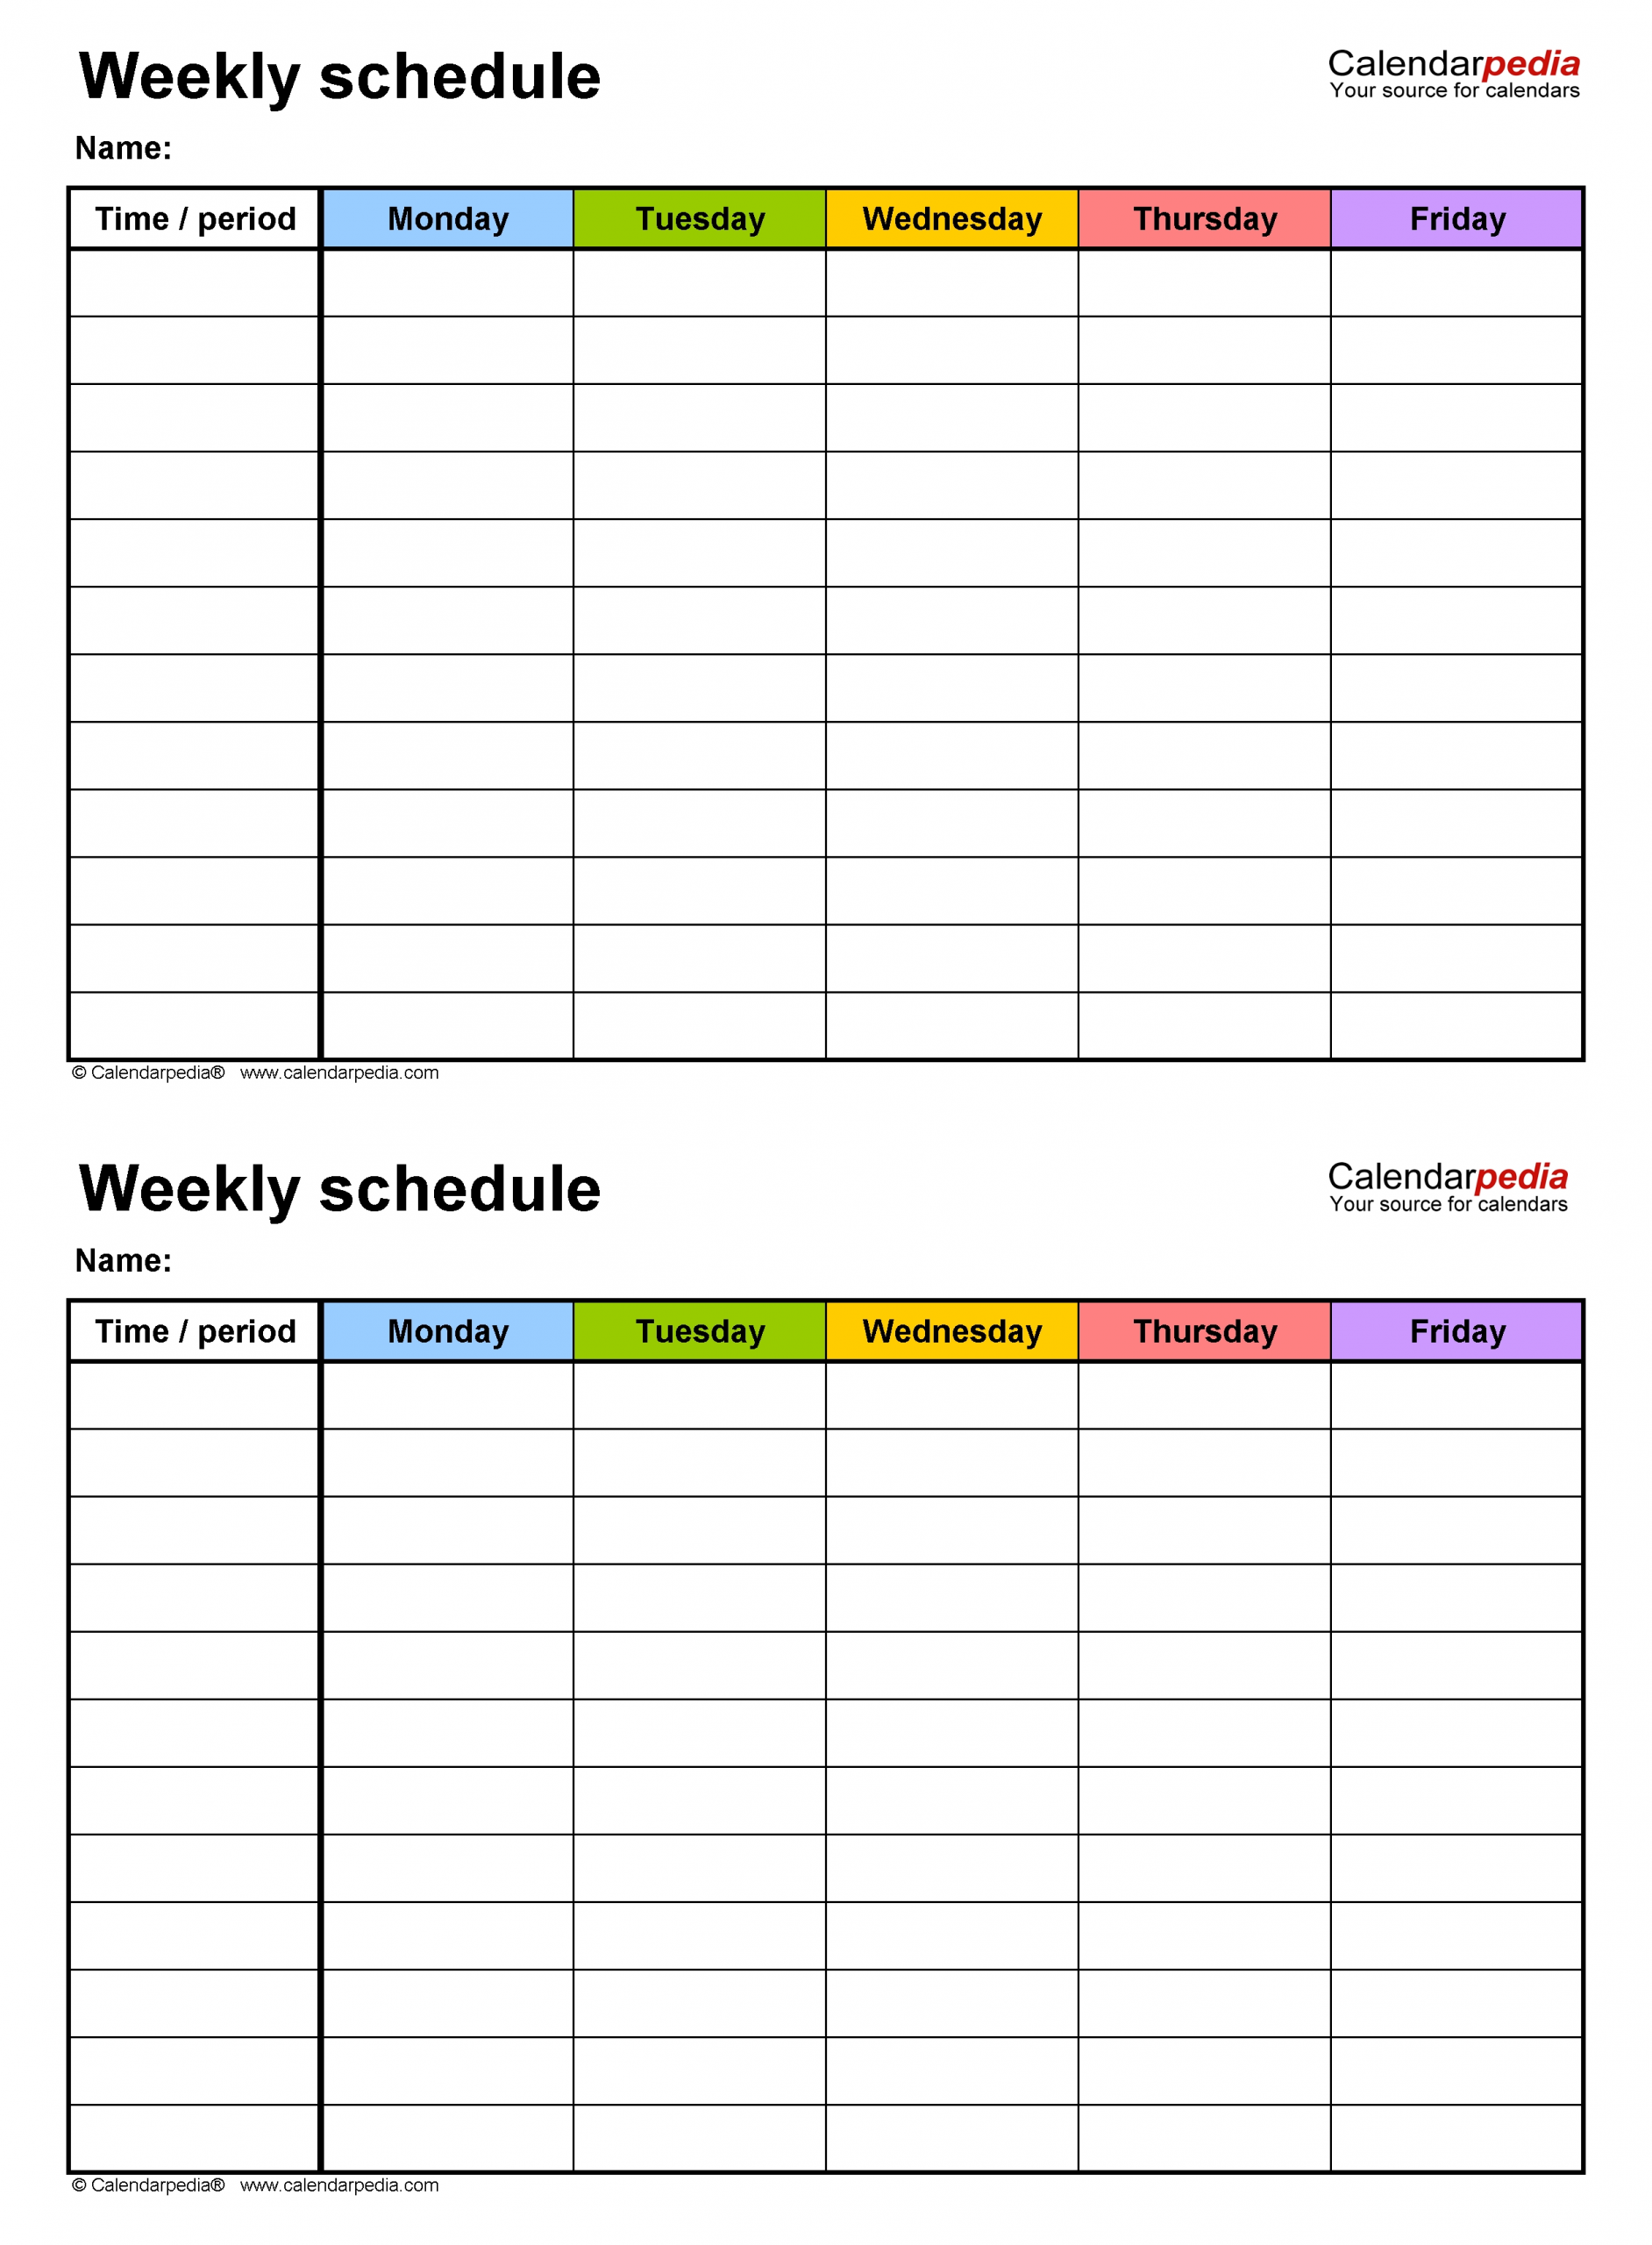 Get Schedule For 4 People 6 Tasks Monday To Friday